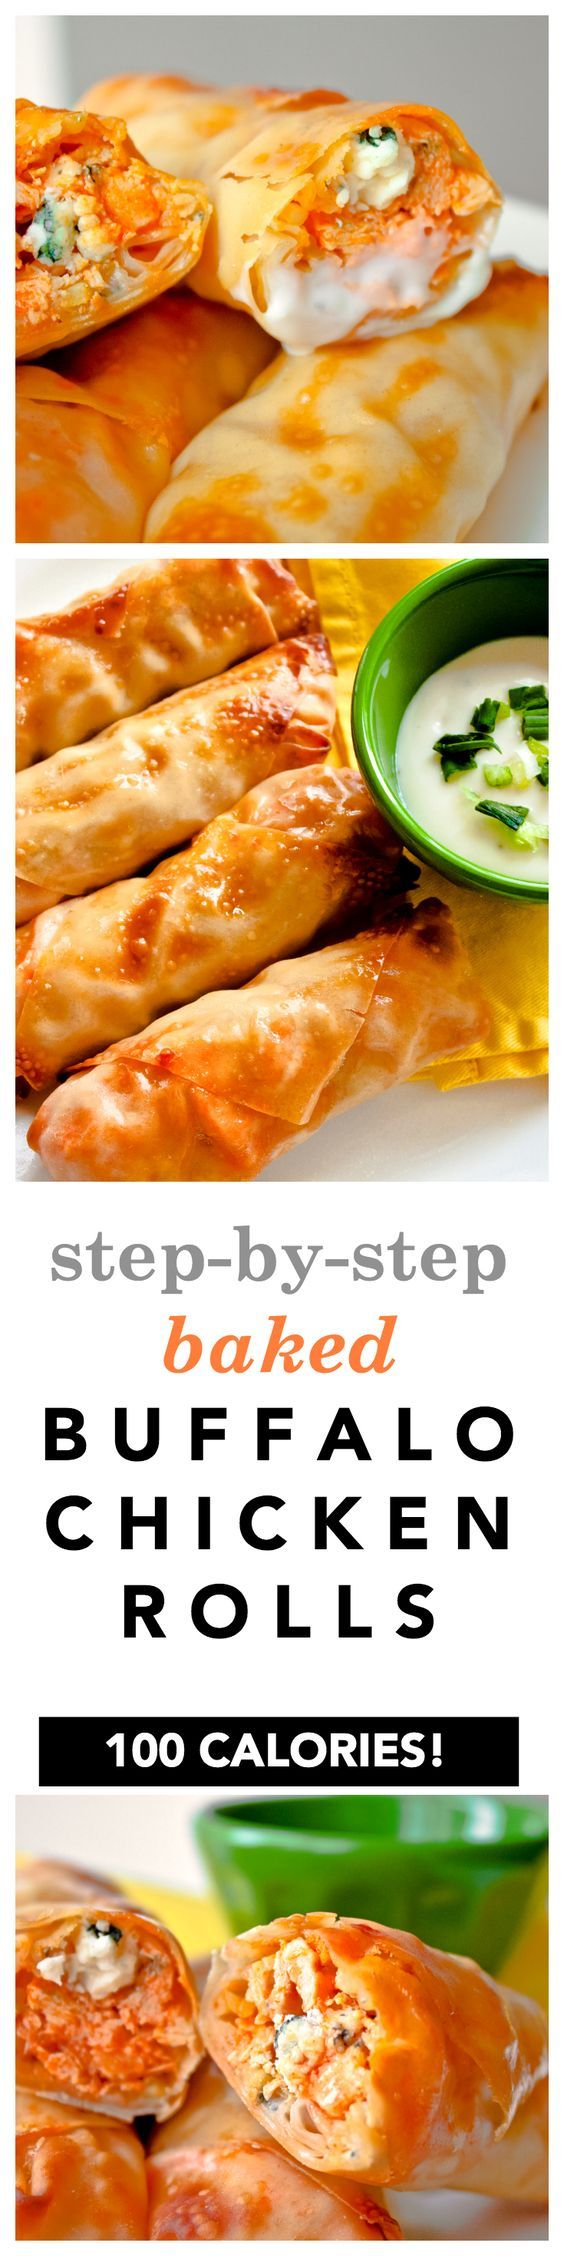 Baked Buffalo Chicken Egg Rolls Recipe! Here's the easy step by step guide showing you how to make healthy buffalo chicken rolls with egg roll wrappers blue cheese hot sauce and broccoli slaw! Perfect as an appetizer but they also work as a main meal too! 103 calories per roll